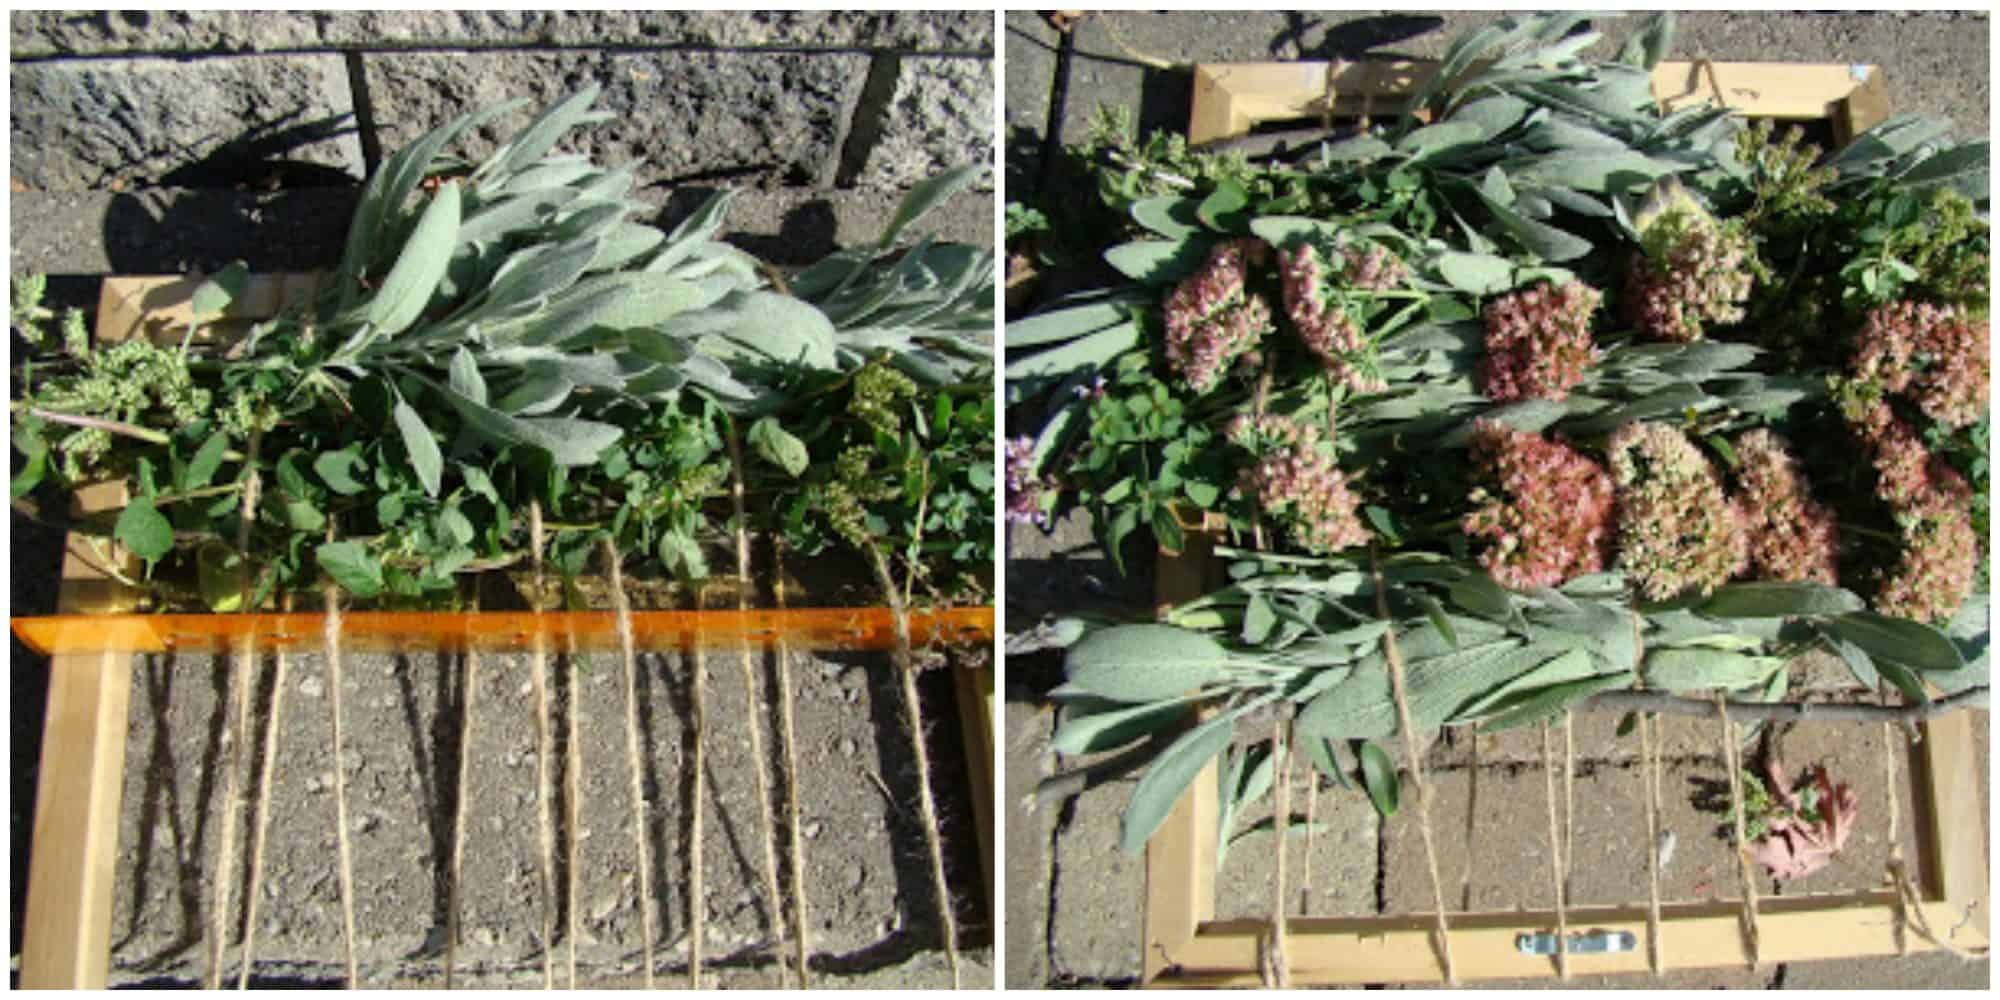 Edible Herb Weaving: Save Summer's Herbs for Winter's Soups, Stews. An herb weaving for drying